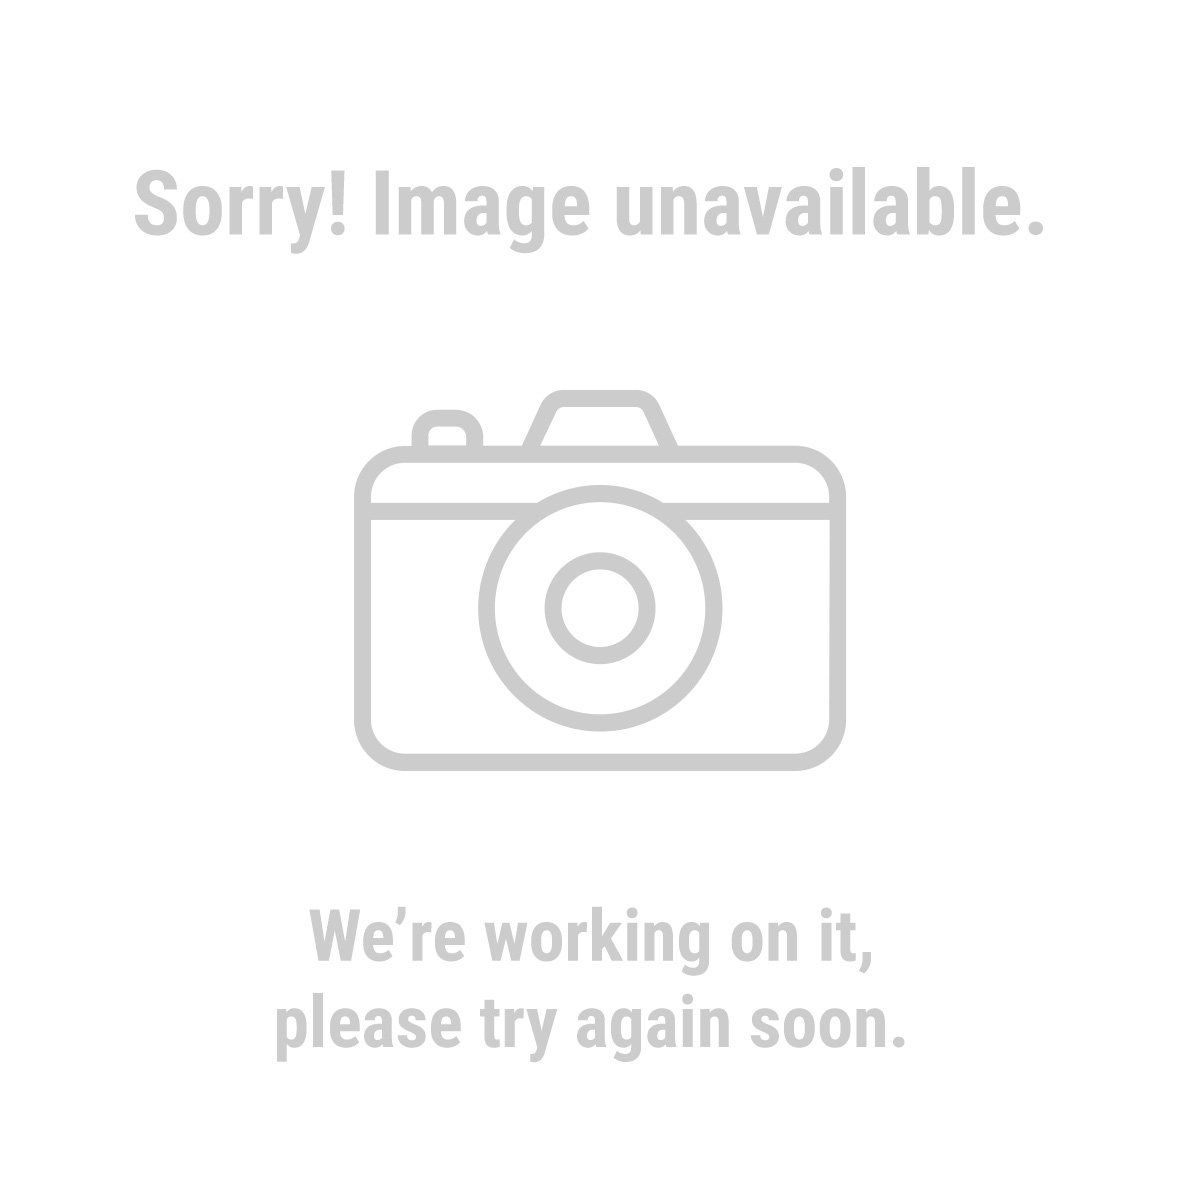 Pittsburgh Automotive 61232 450 Lb. Capacity Low Lift Transmission Jack